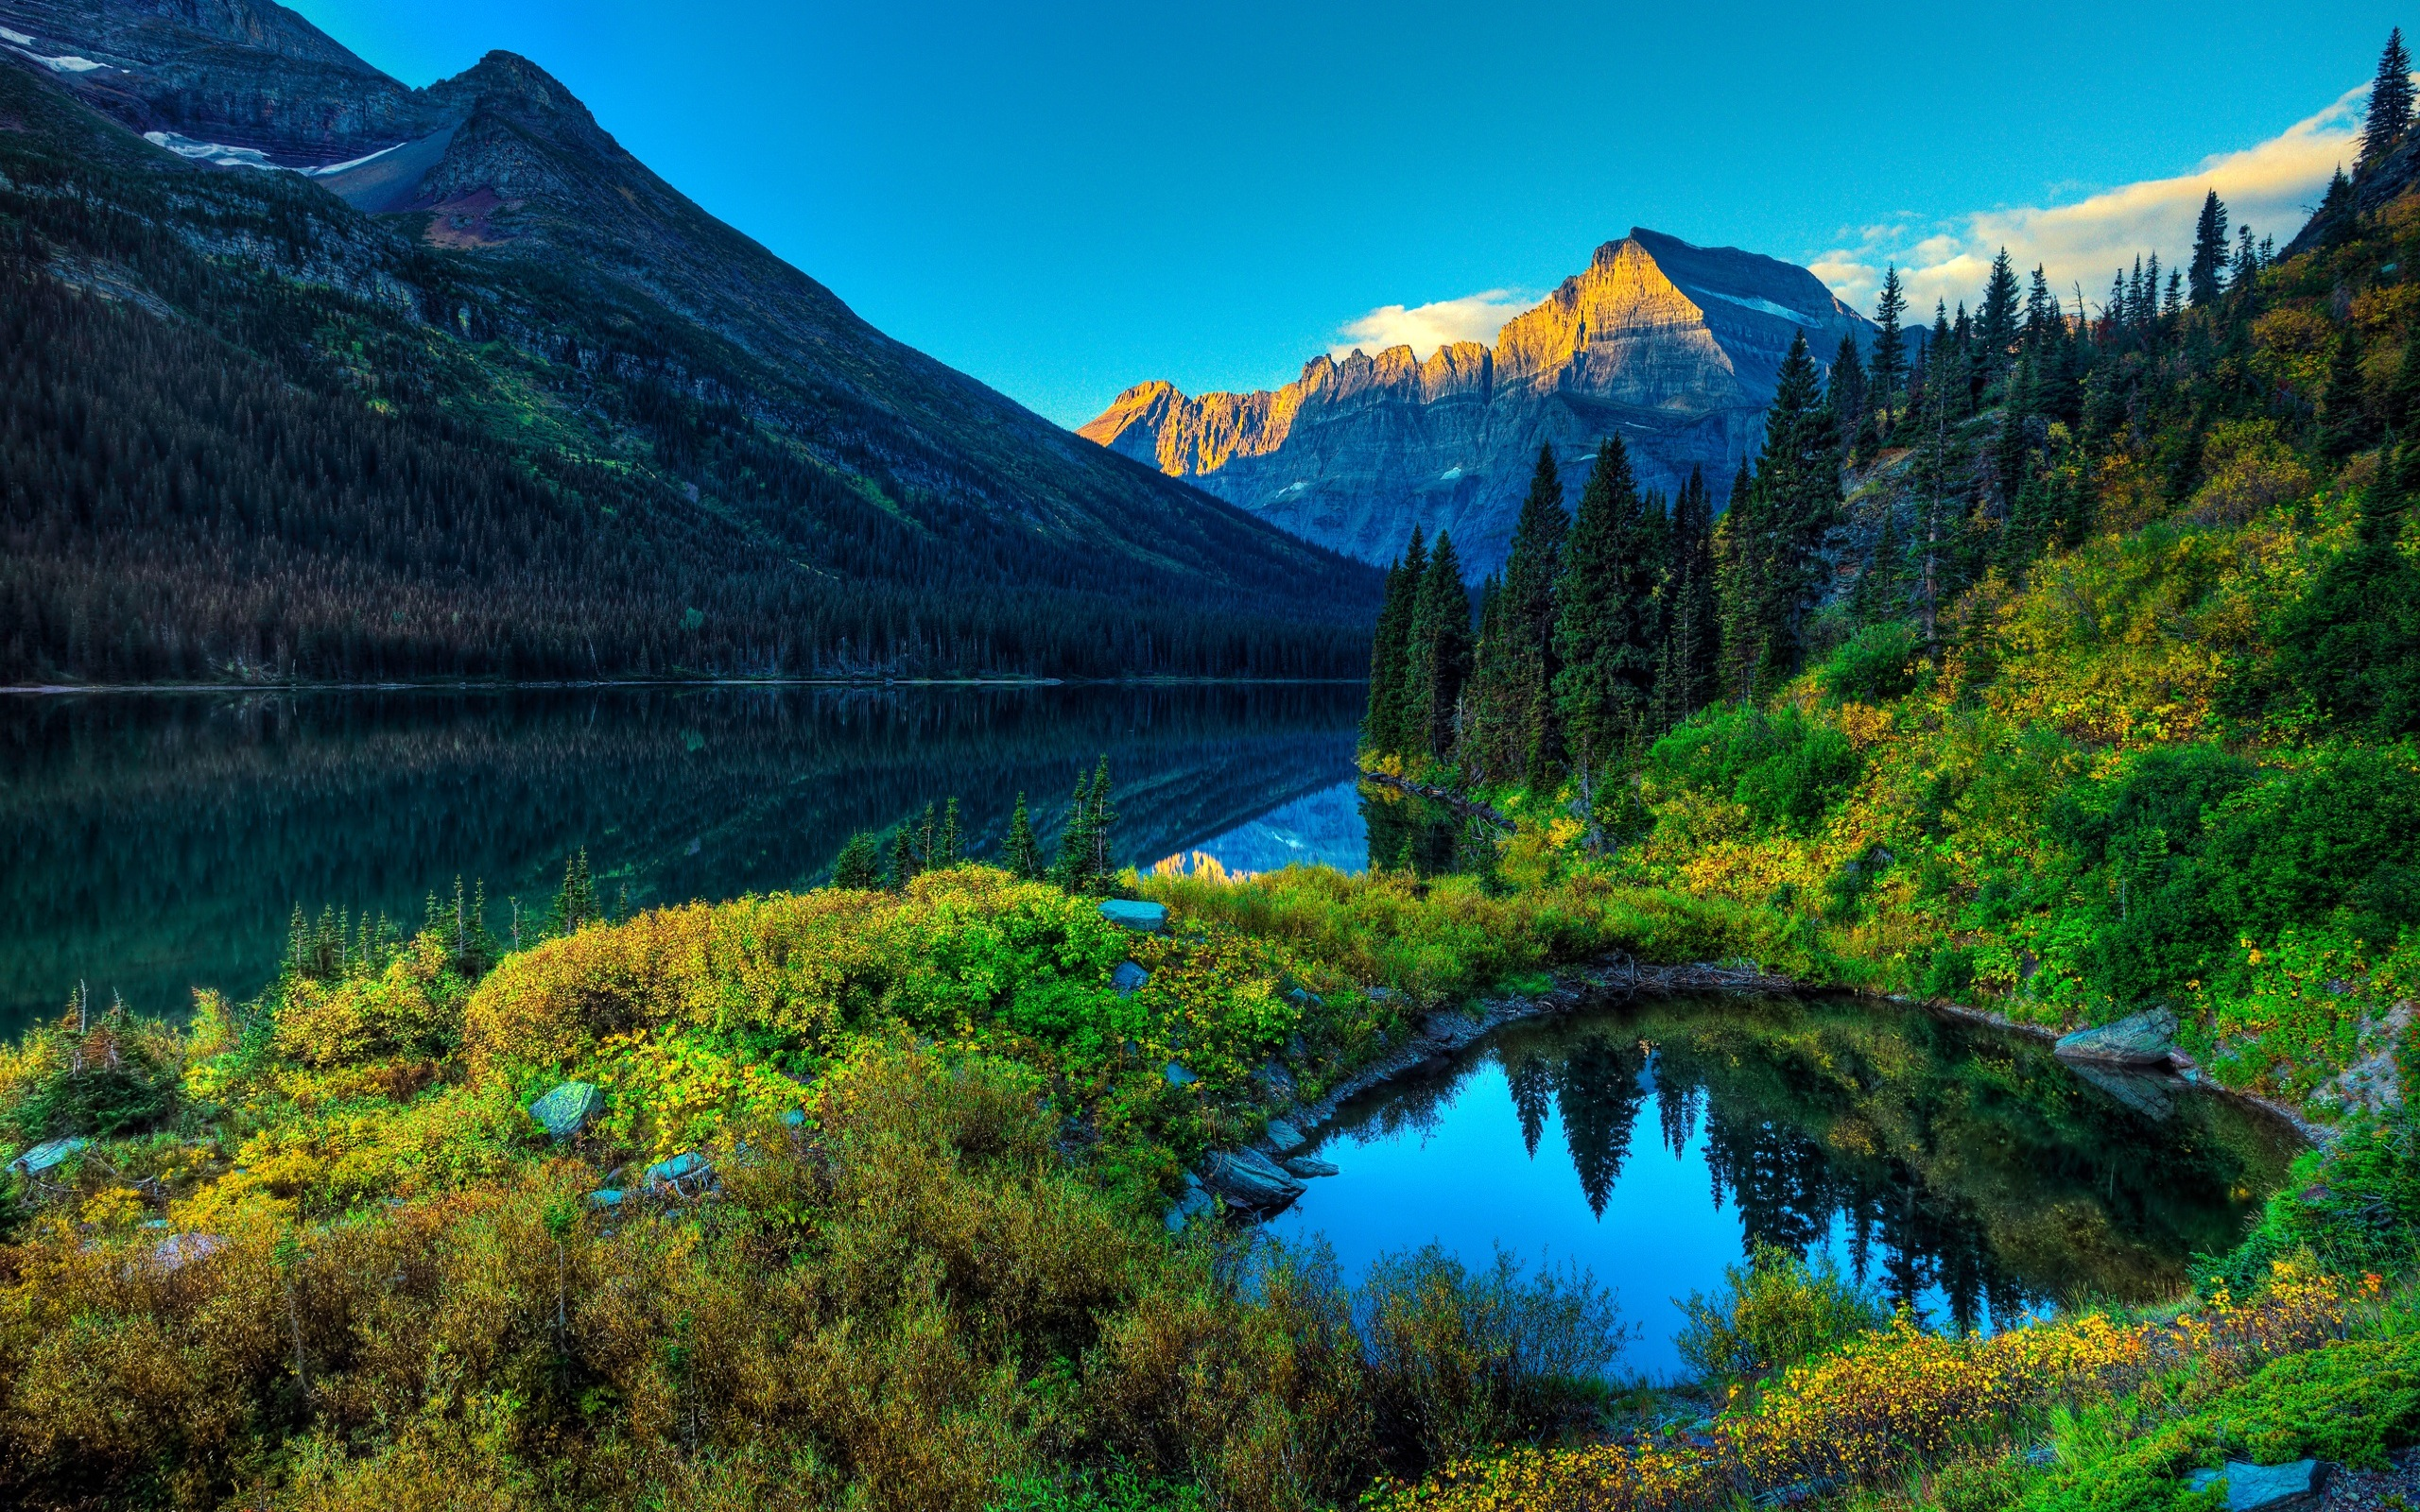 Natural Scenery Wallpapers HD